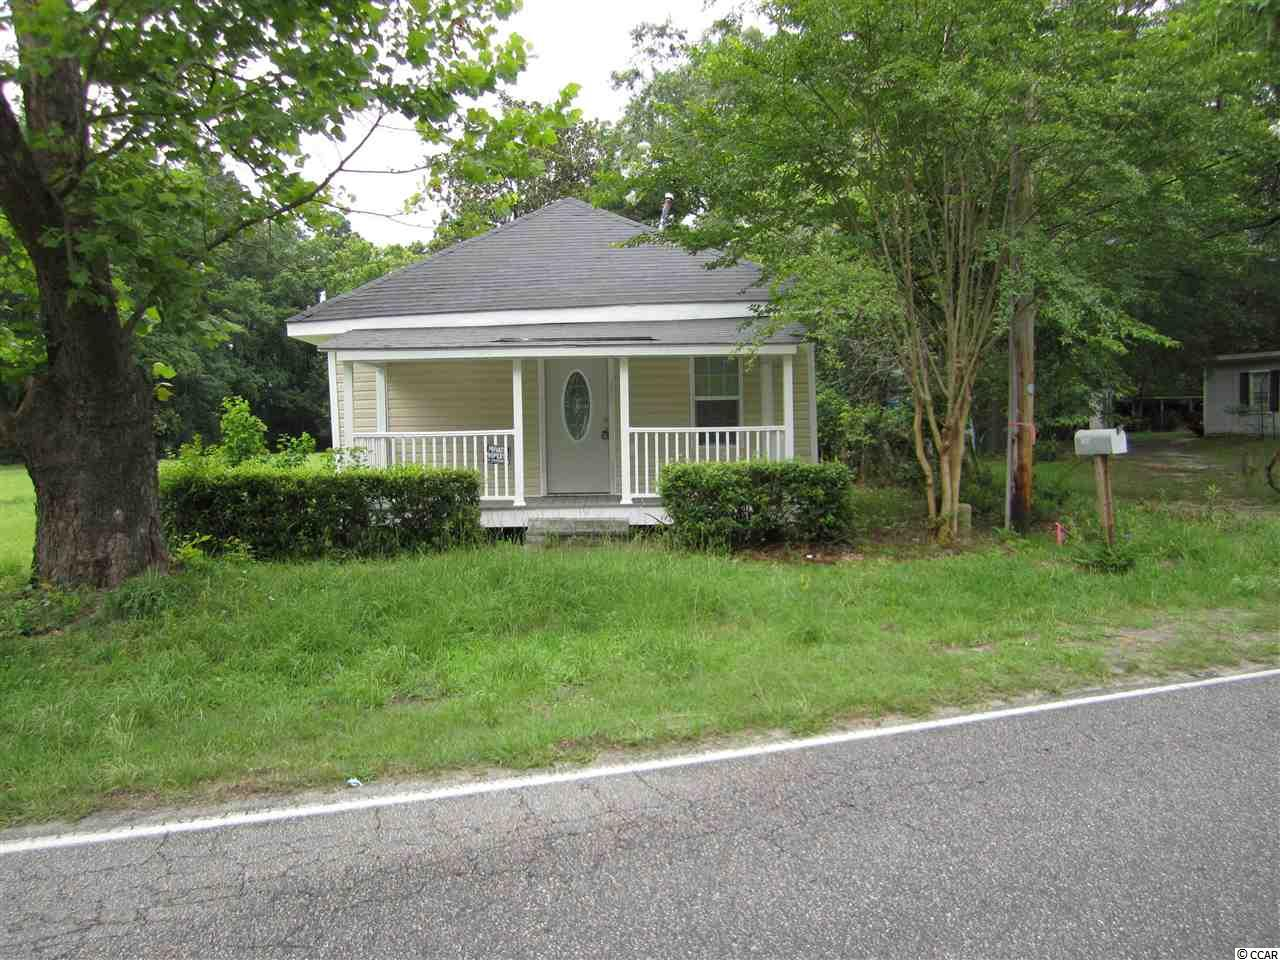 .NO HOA .VERY CUTE SMALL HOUSE IN DOWNTOWN CONWAY..CLOSE TO PARK,MALL ,WALMART, AND RESTAURANTS..GRANITE COUNTER TOPS ,S/S APPLIANCES AND MAINTENANCE FREE FLOORING.SHED MAY STAY OR BE REMOVED BY SELLER.